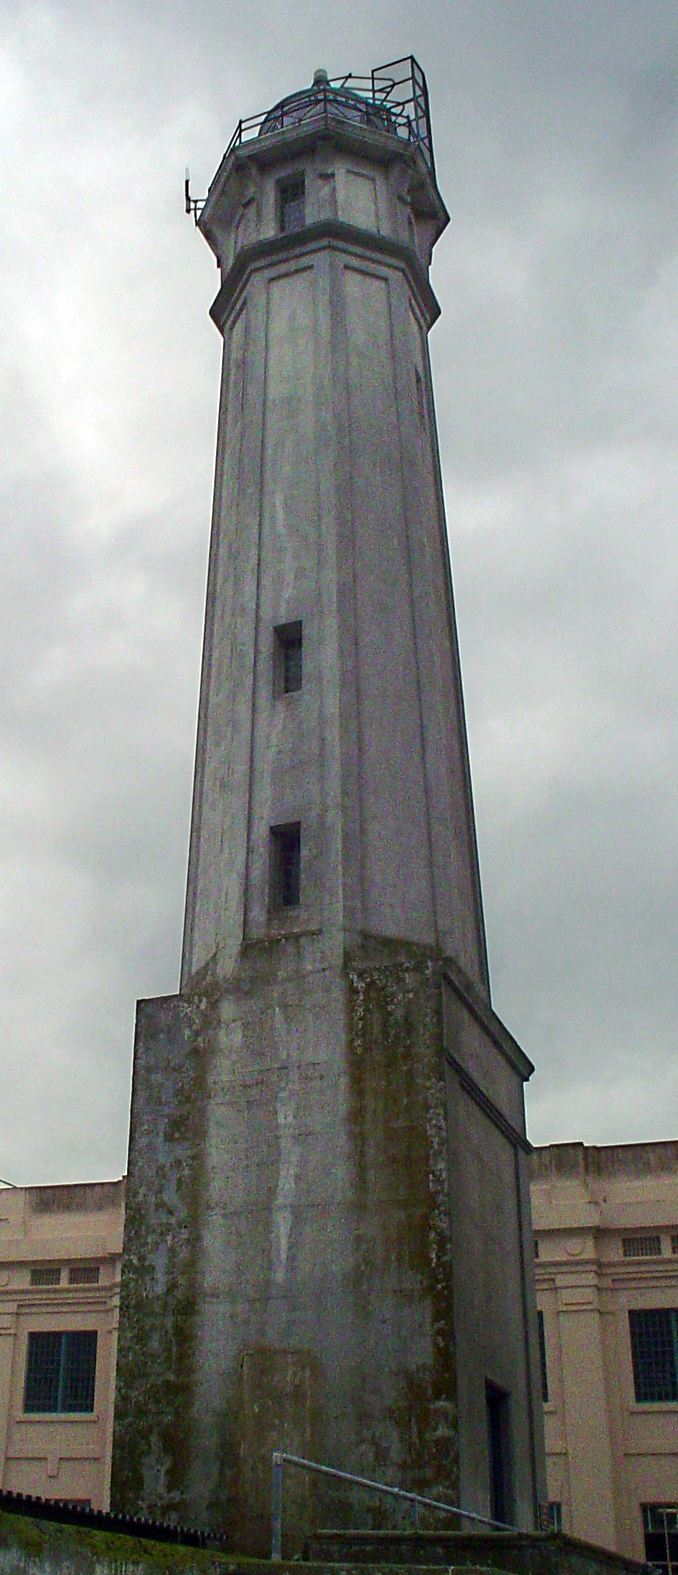 The lighthouse tower adjacent to the prison cell house. 